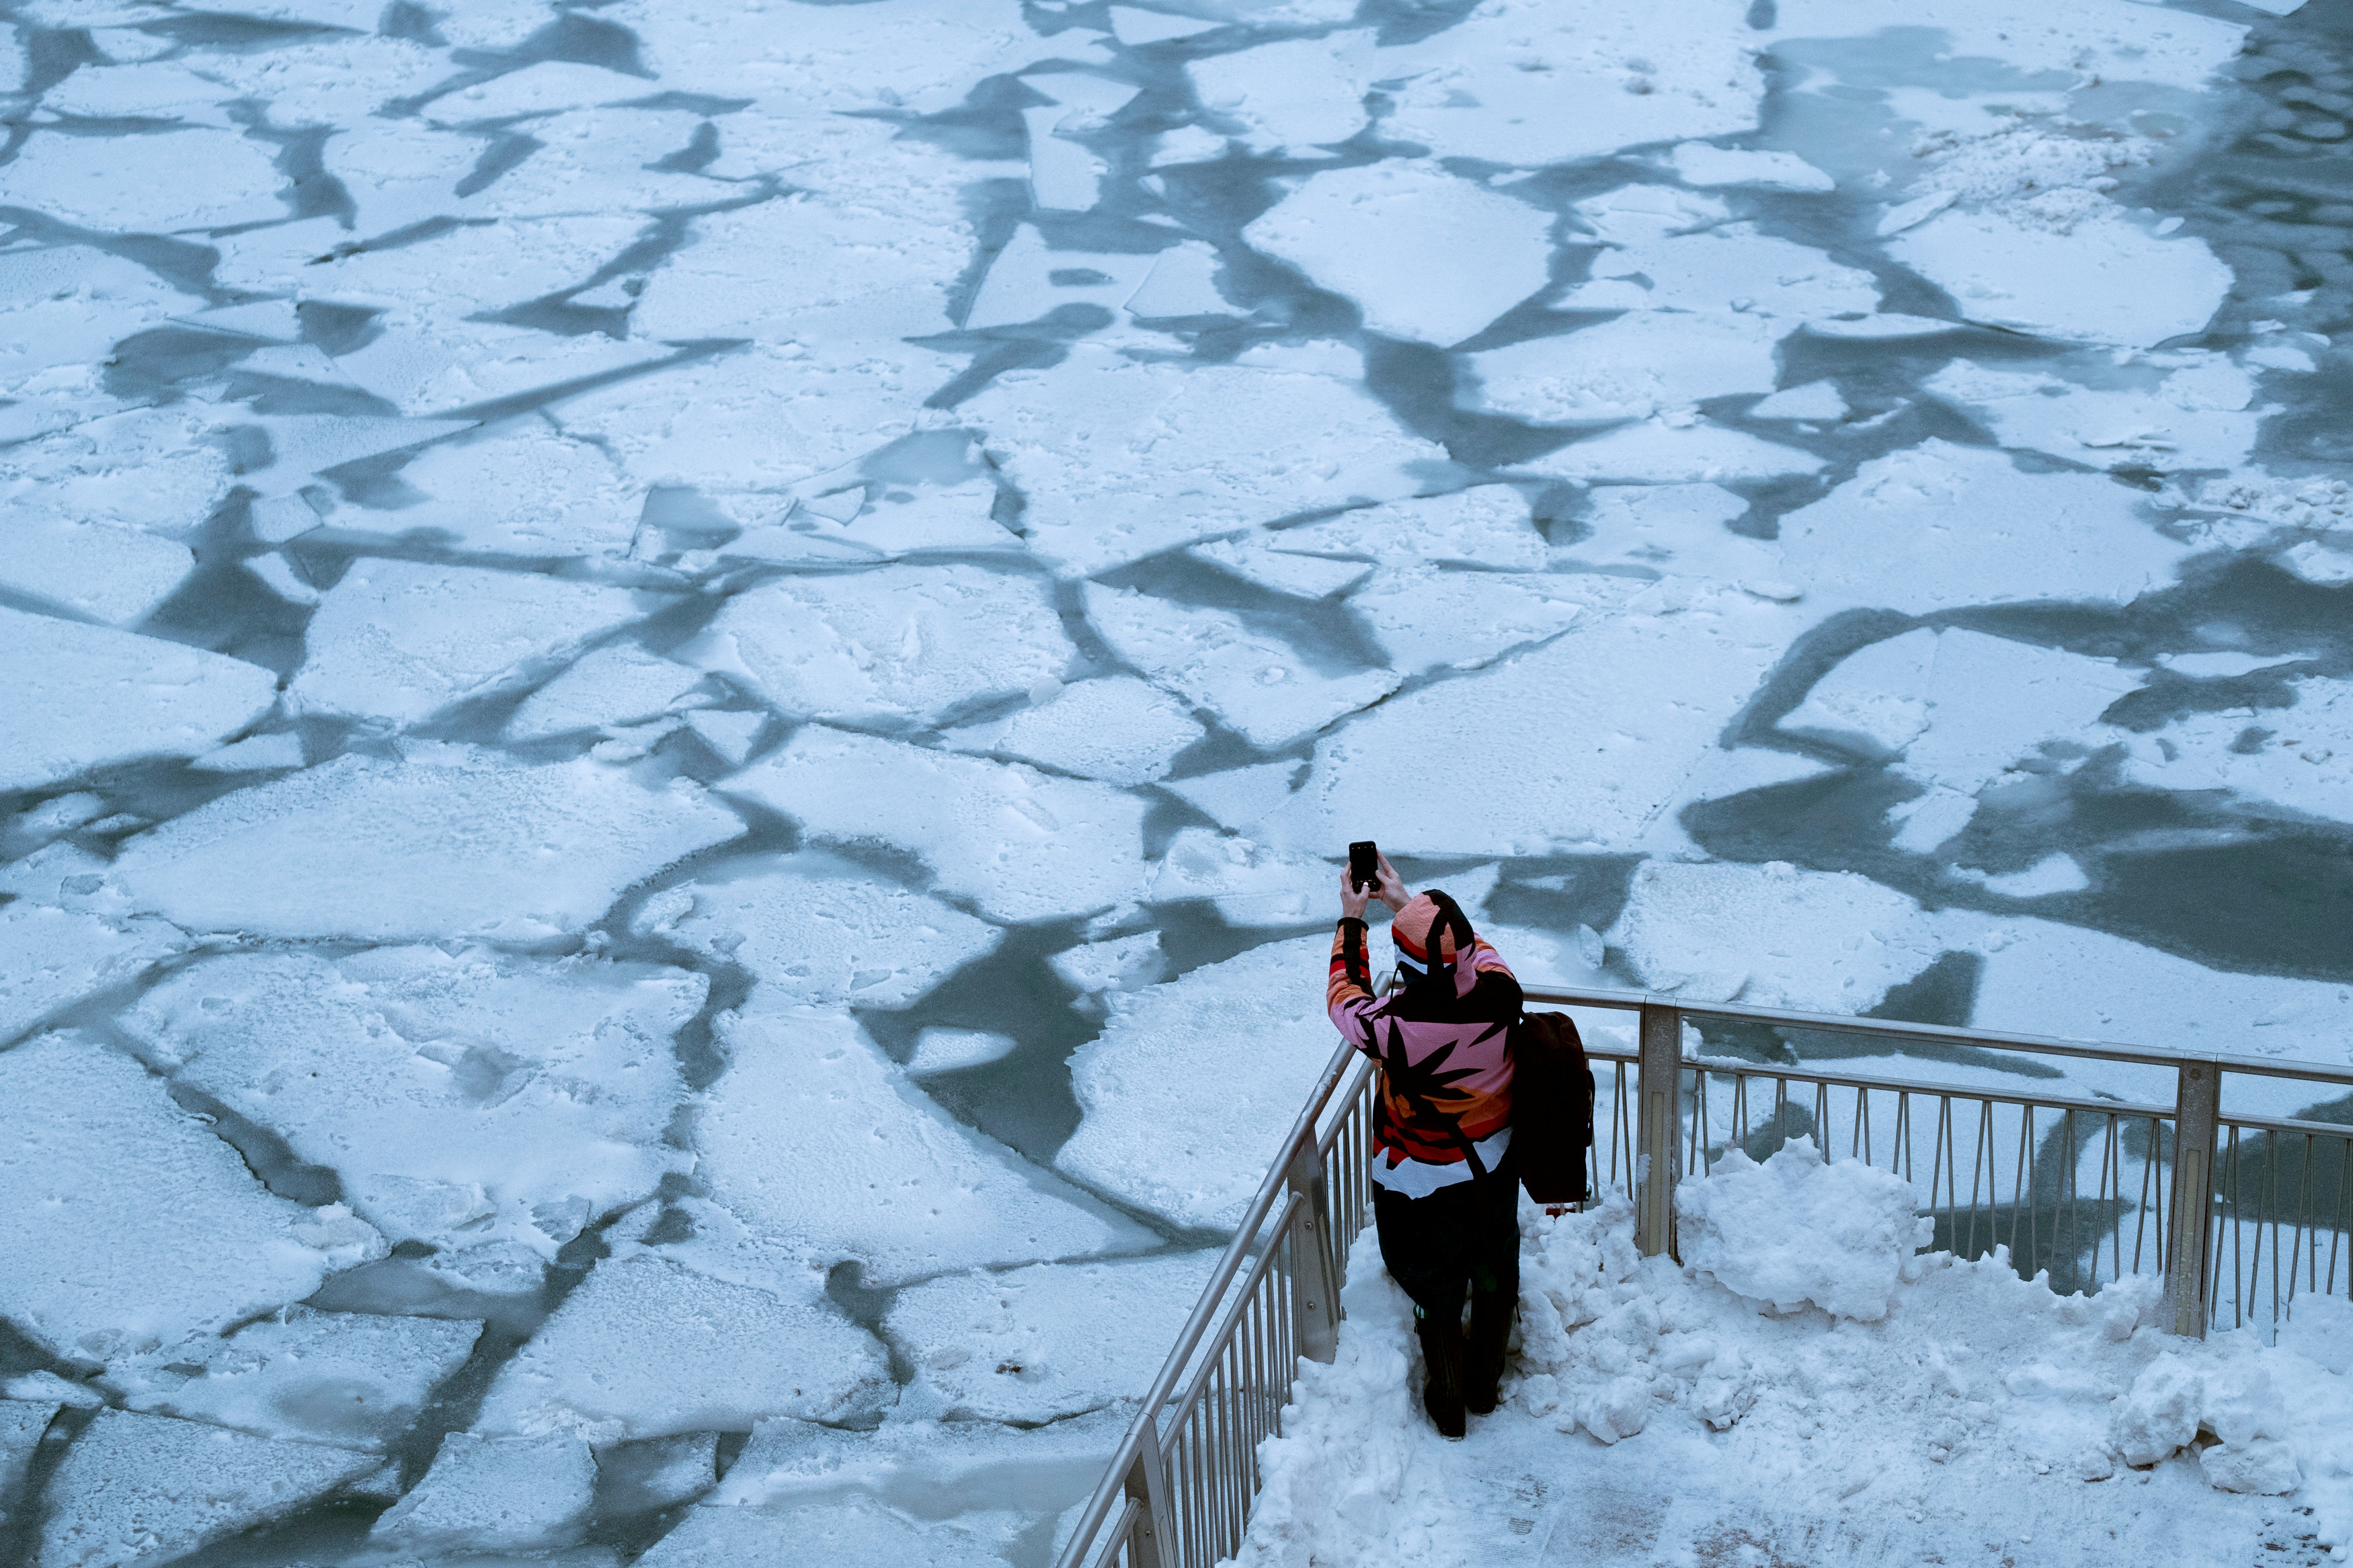 A pedestrian stops to take a photo by Chicago River, as bitter cold phenomenon called the polar vortex has descended on much of the central and eastern United States, in Chicago, Illinois, U.S., January 29, 2019.  REUTERS